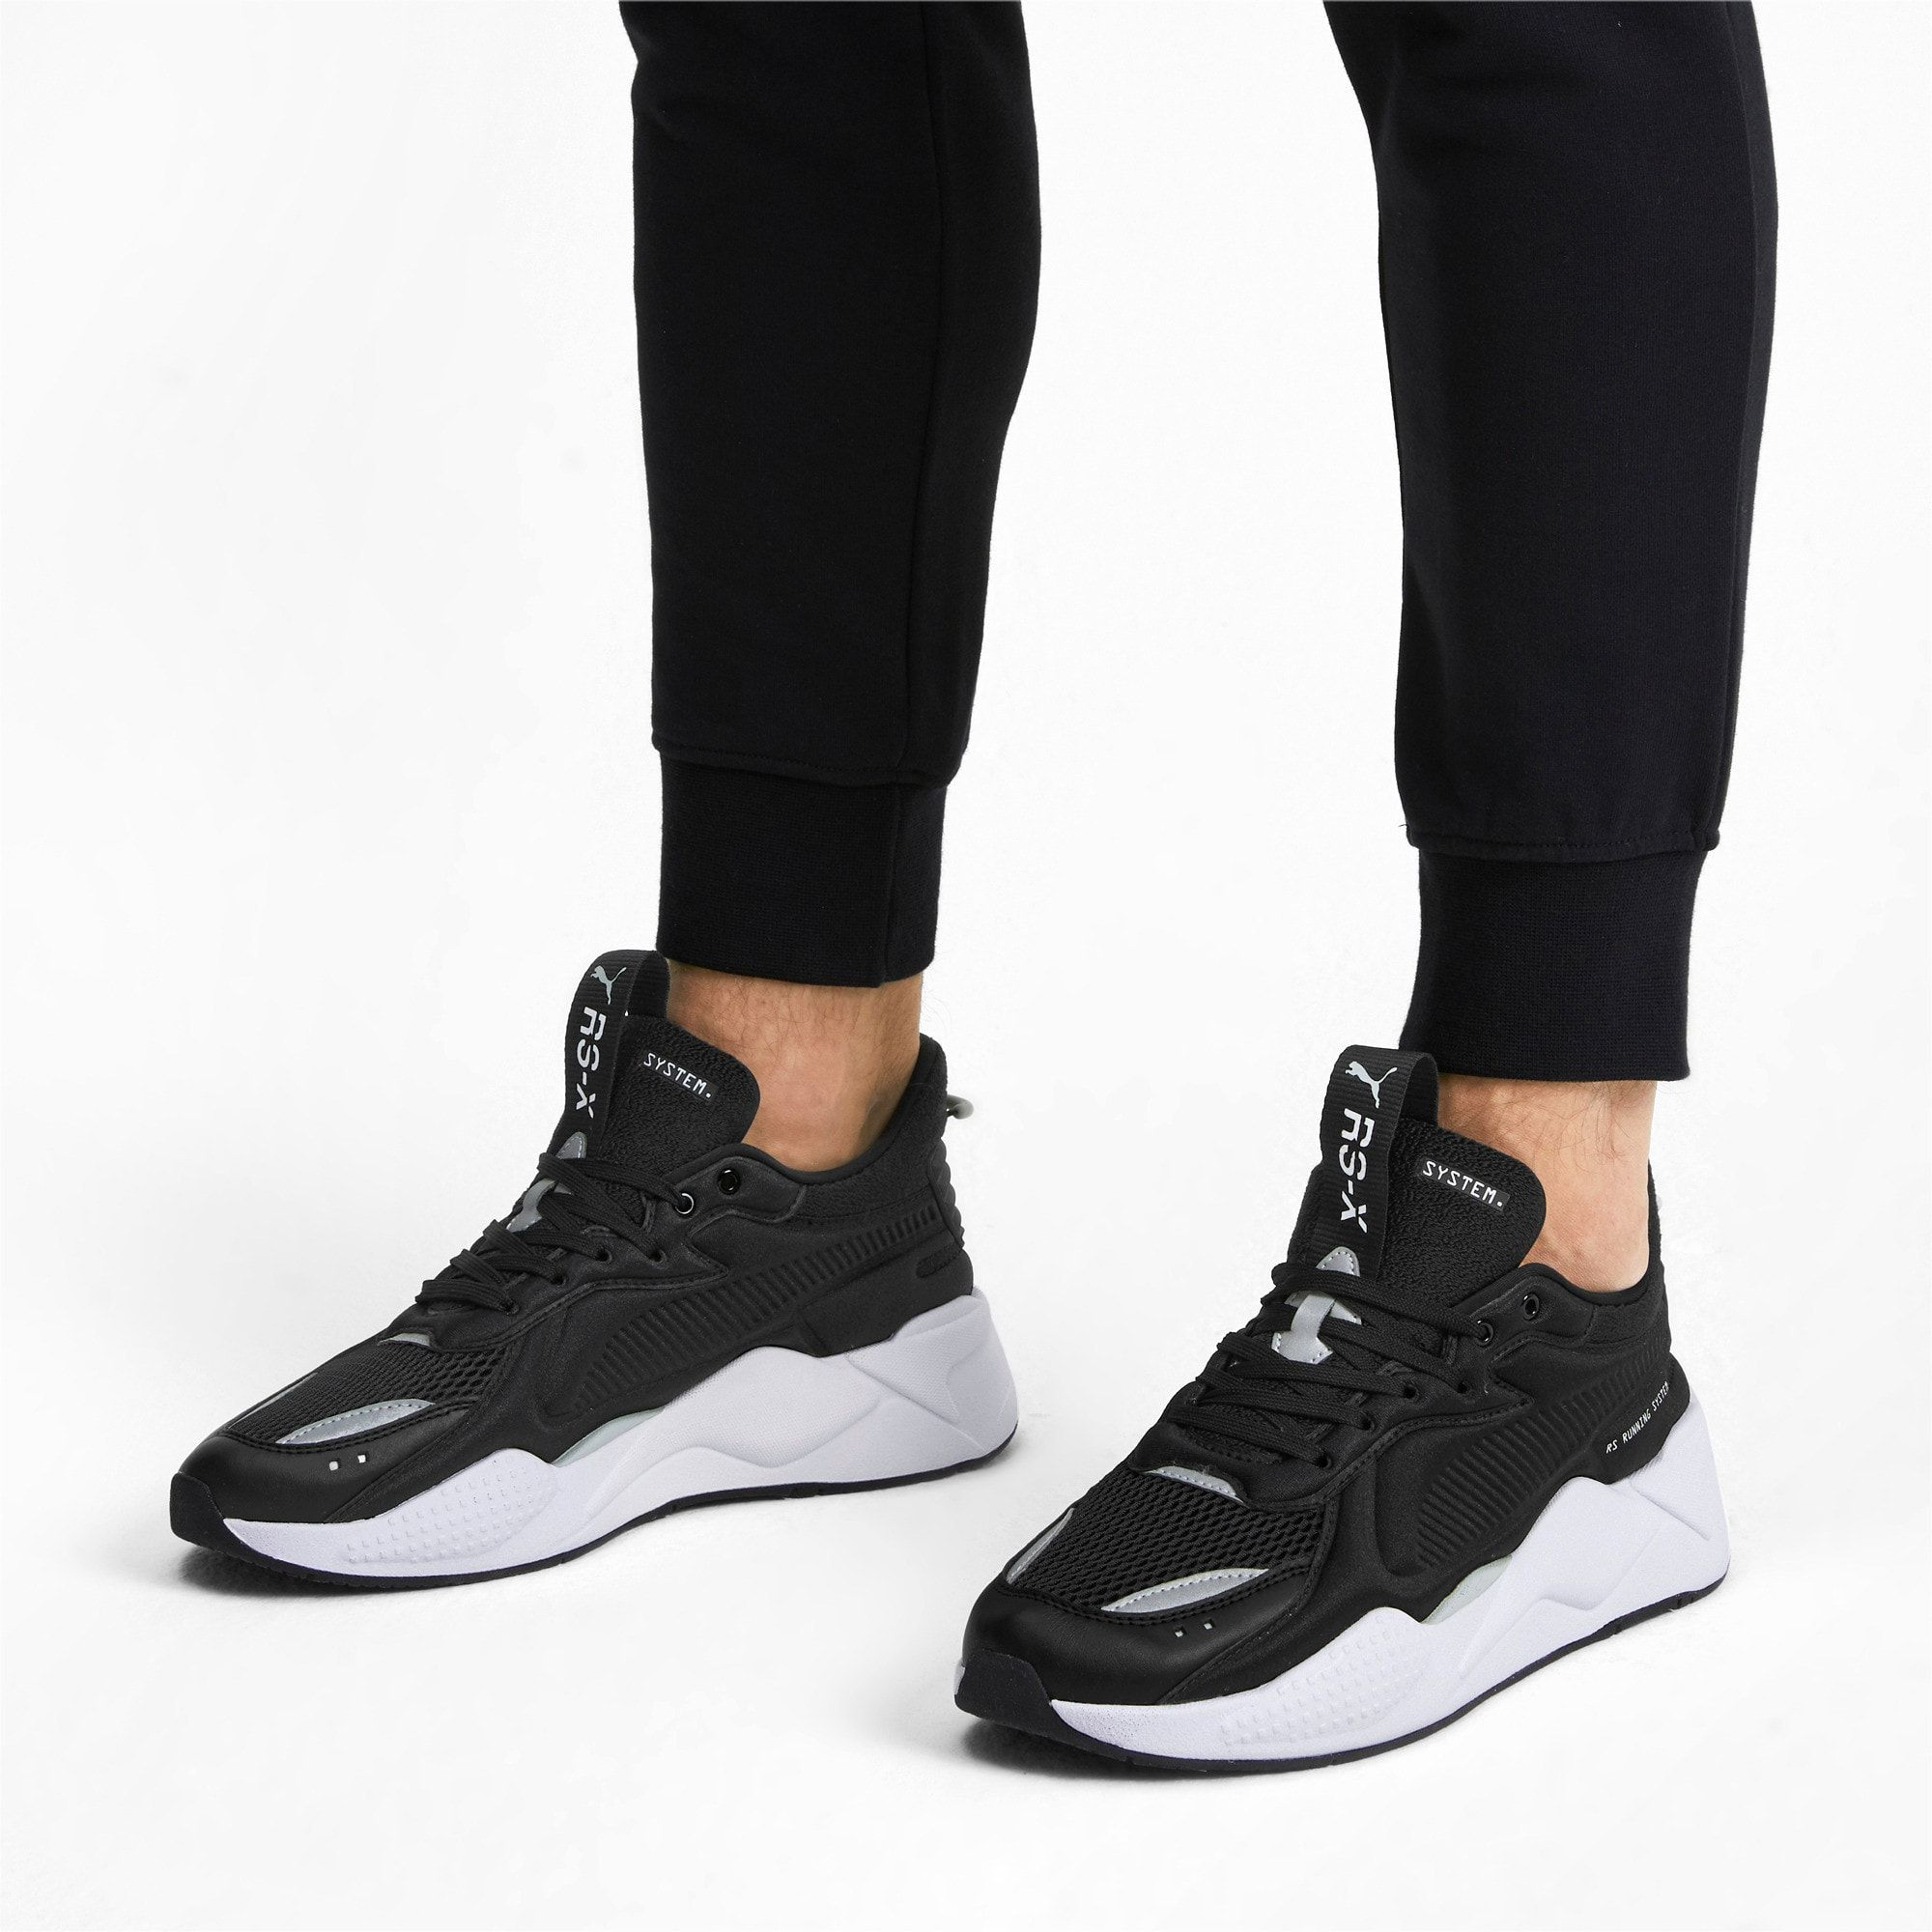 PUMA Rs-X Softcase Trainers in Black/White size 10.5 ...